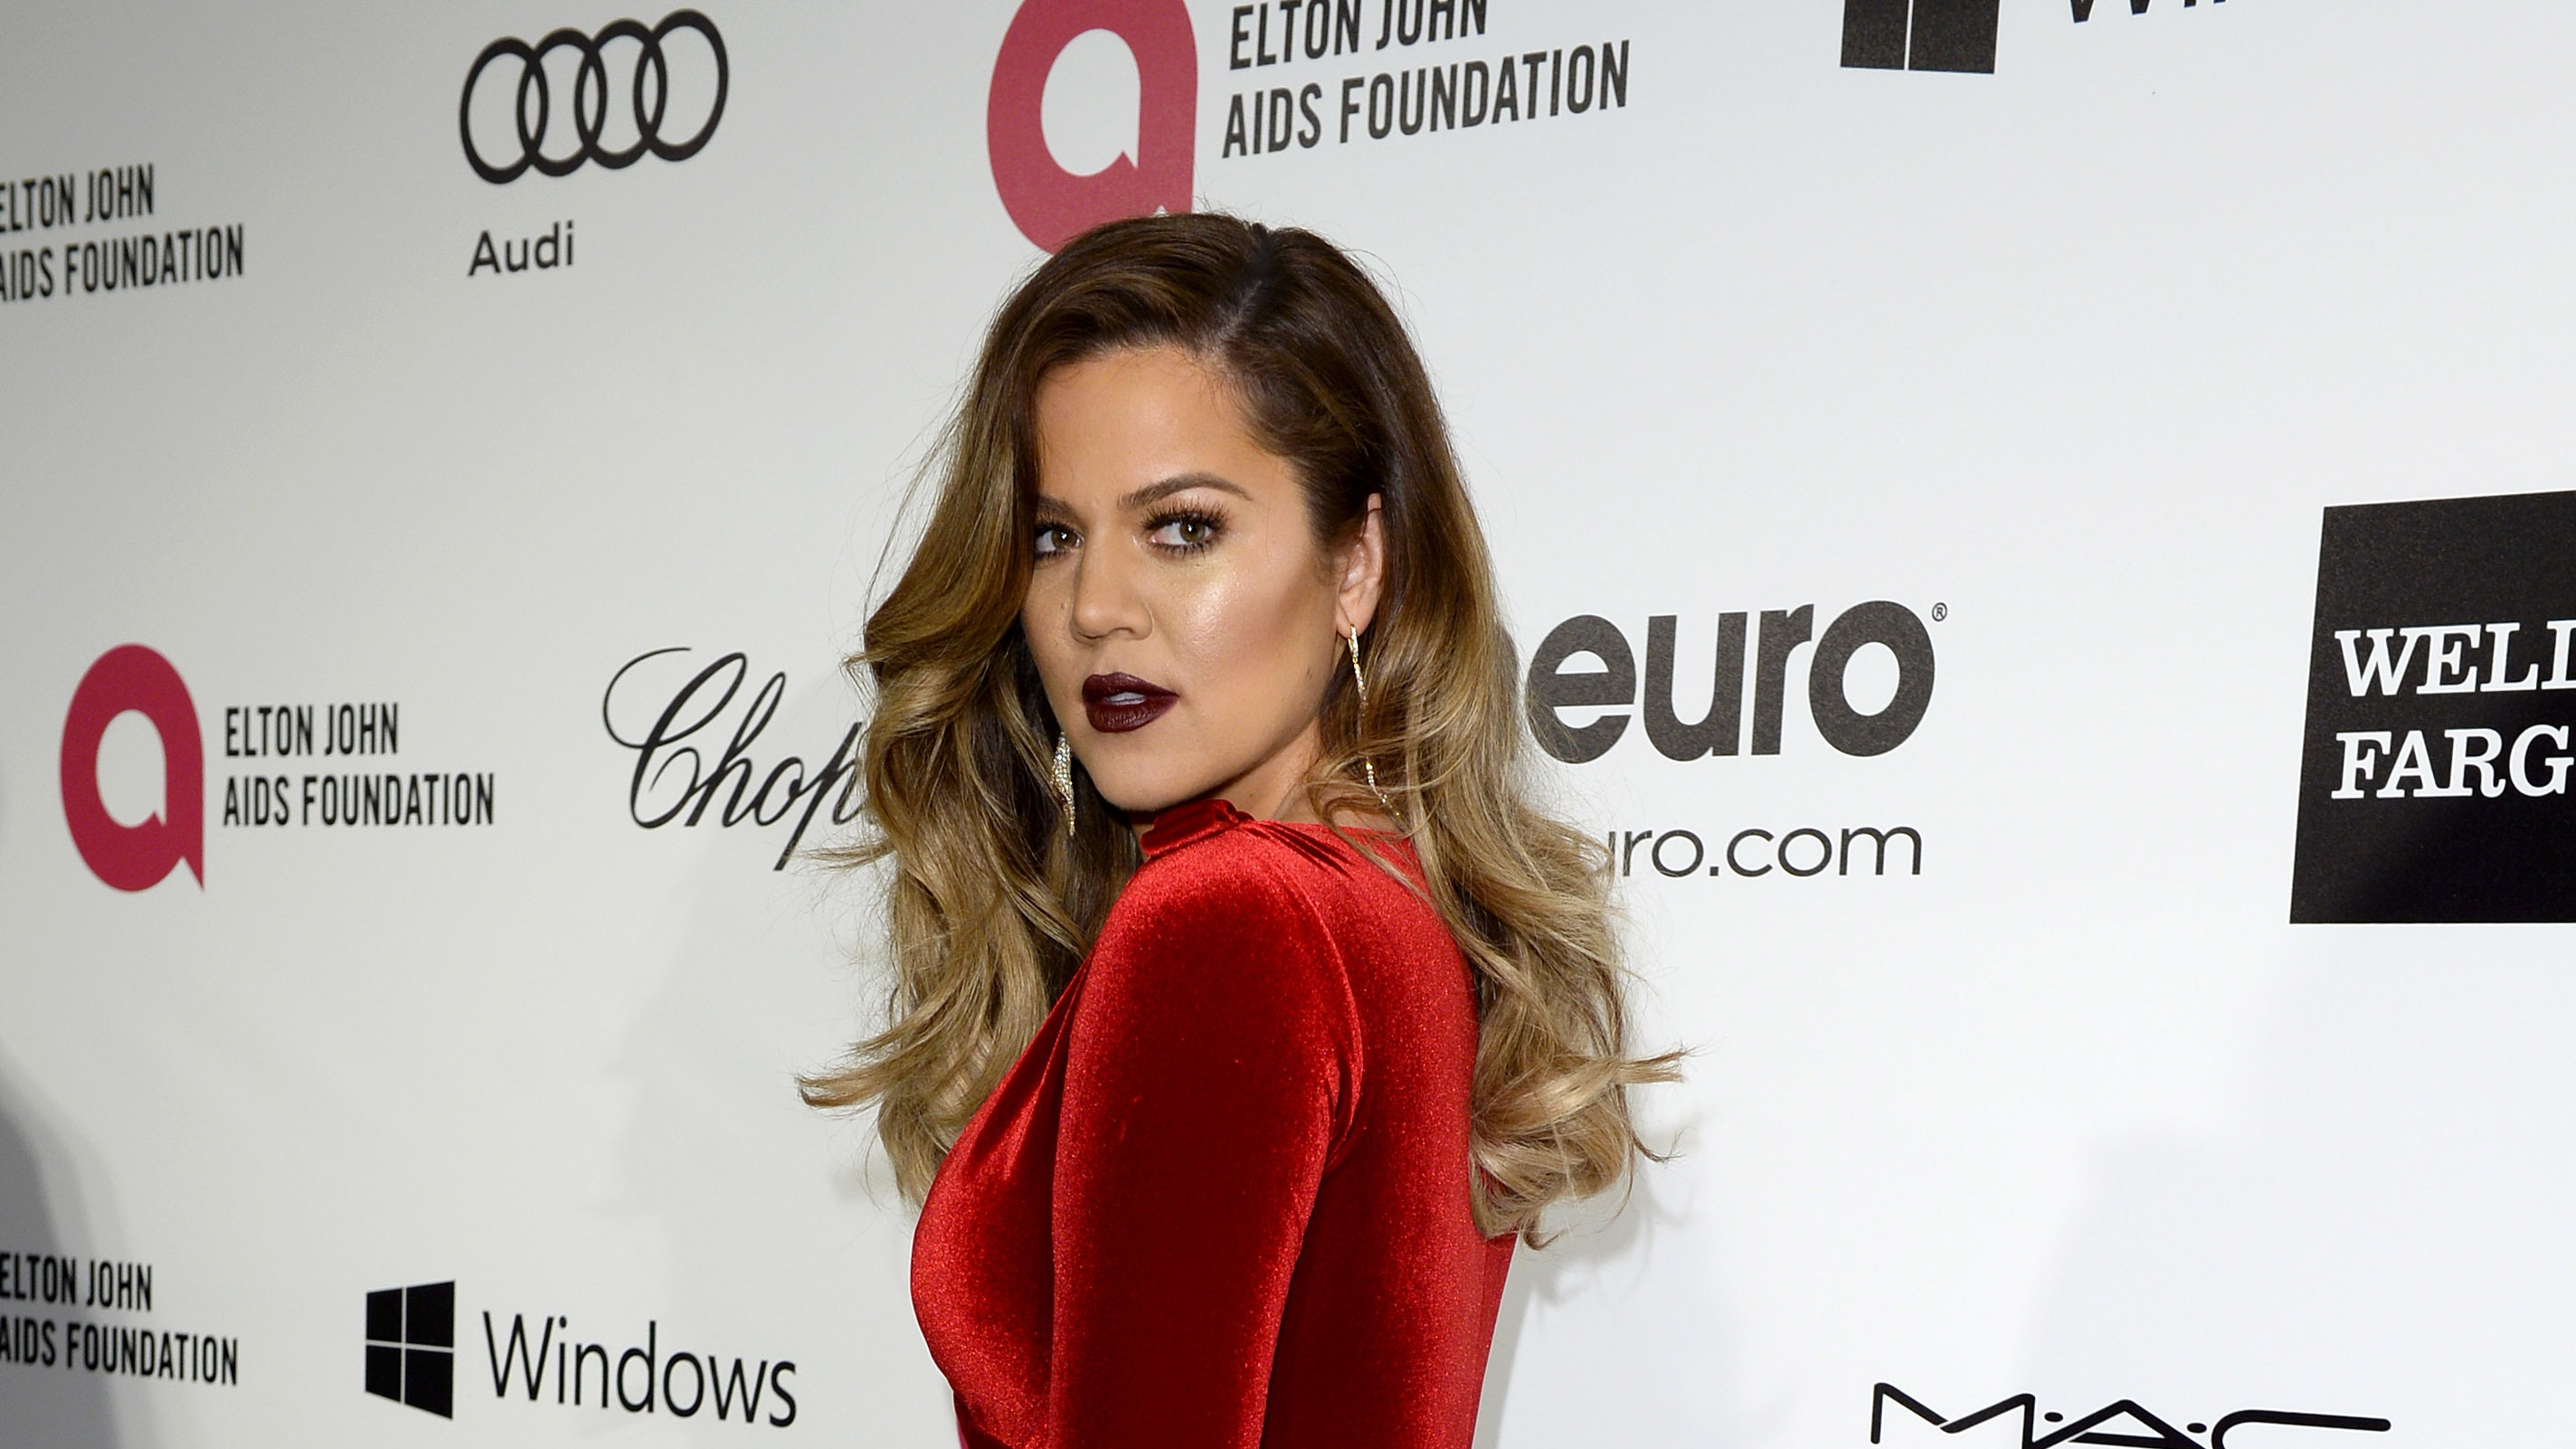 Khloe Kardashian reveals newborn daughter's unusual name - which has a special meaning